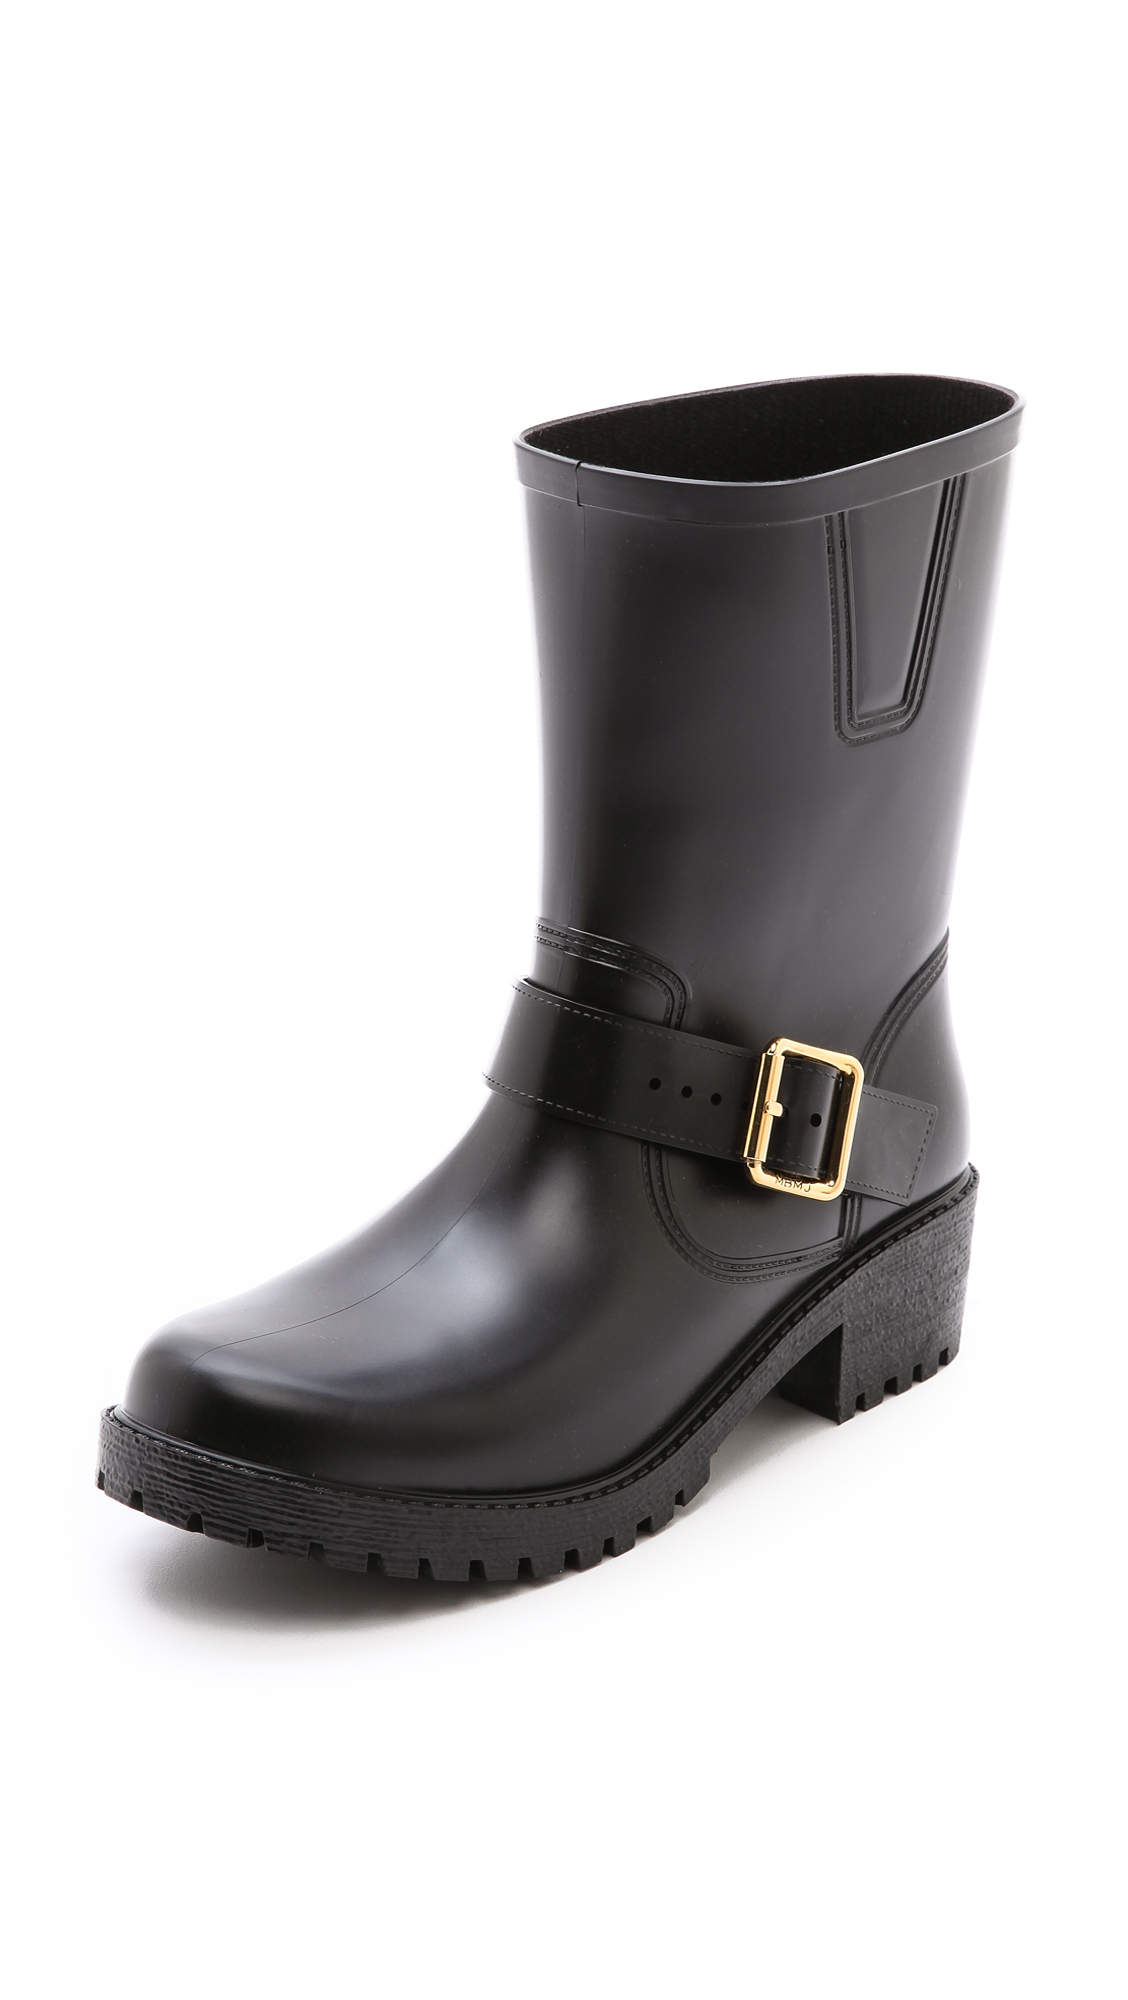 marc by marc jacobs short rain boots in black lyst. Black Bedroom Furniture Sets. Home Design Ideas